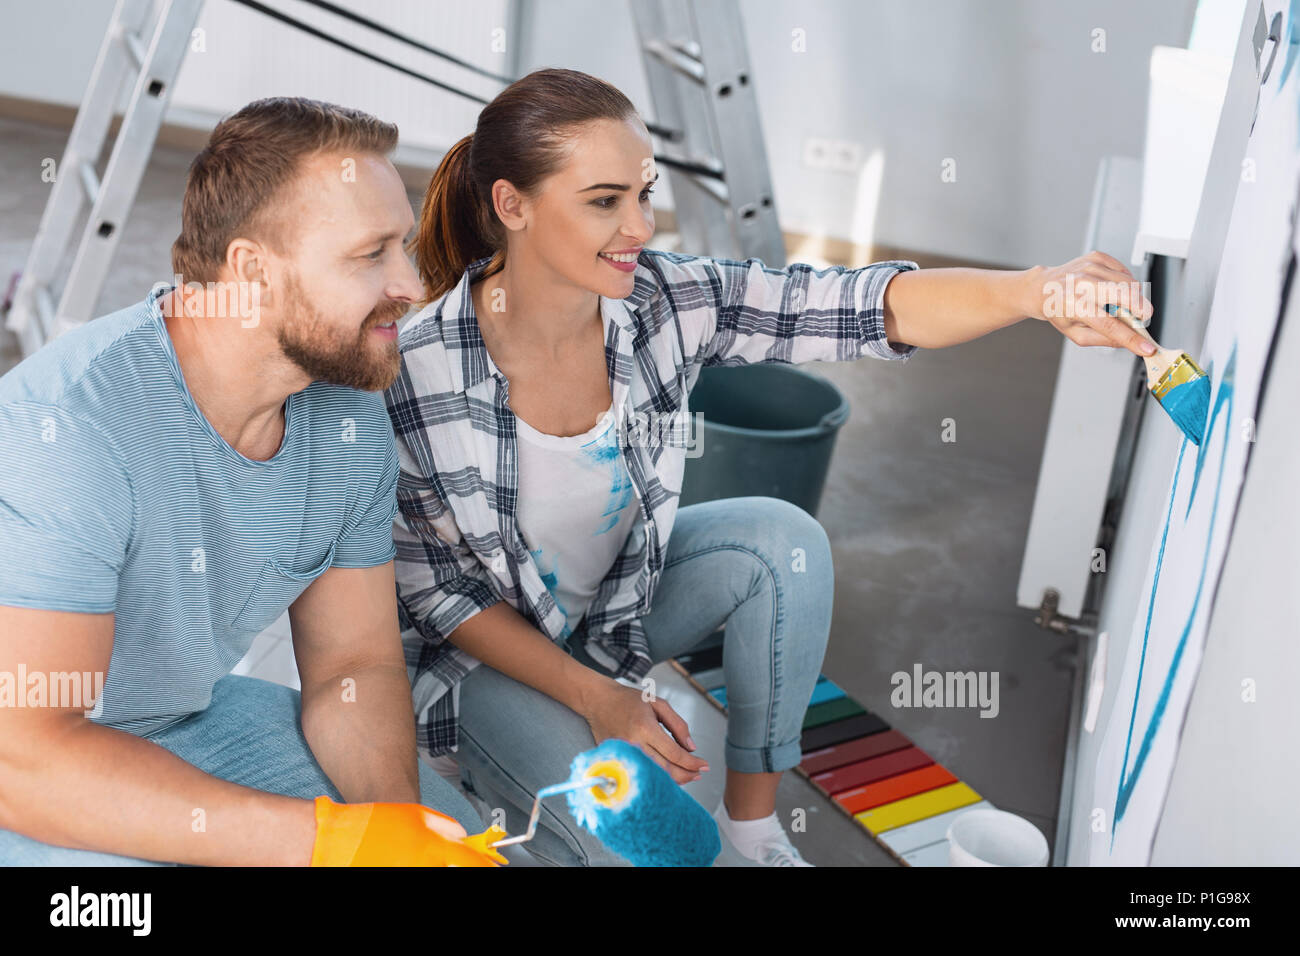 Inspired woman painting a heart for her man - Stock Image